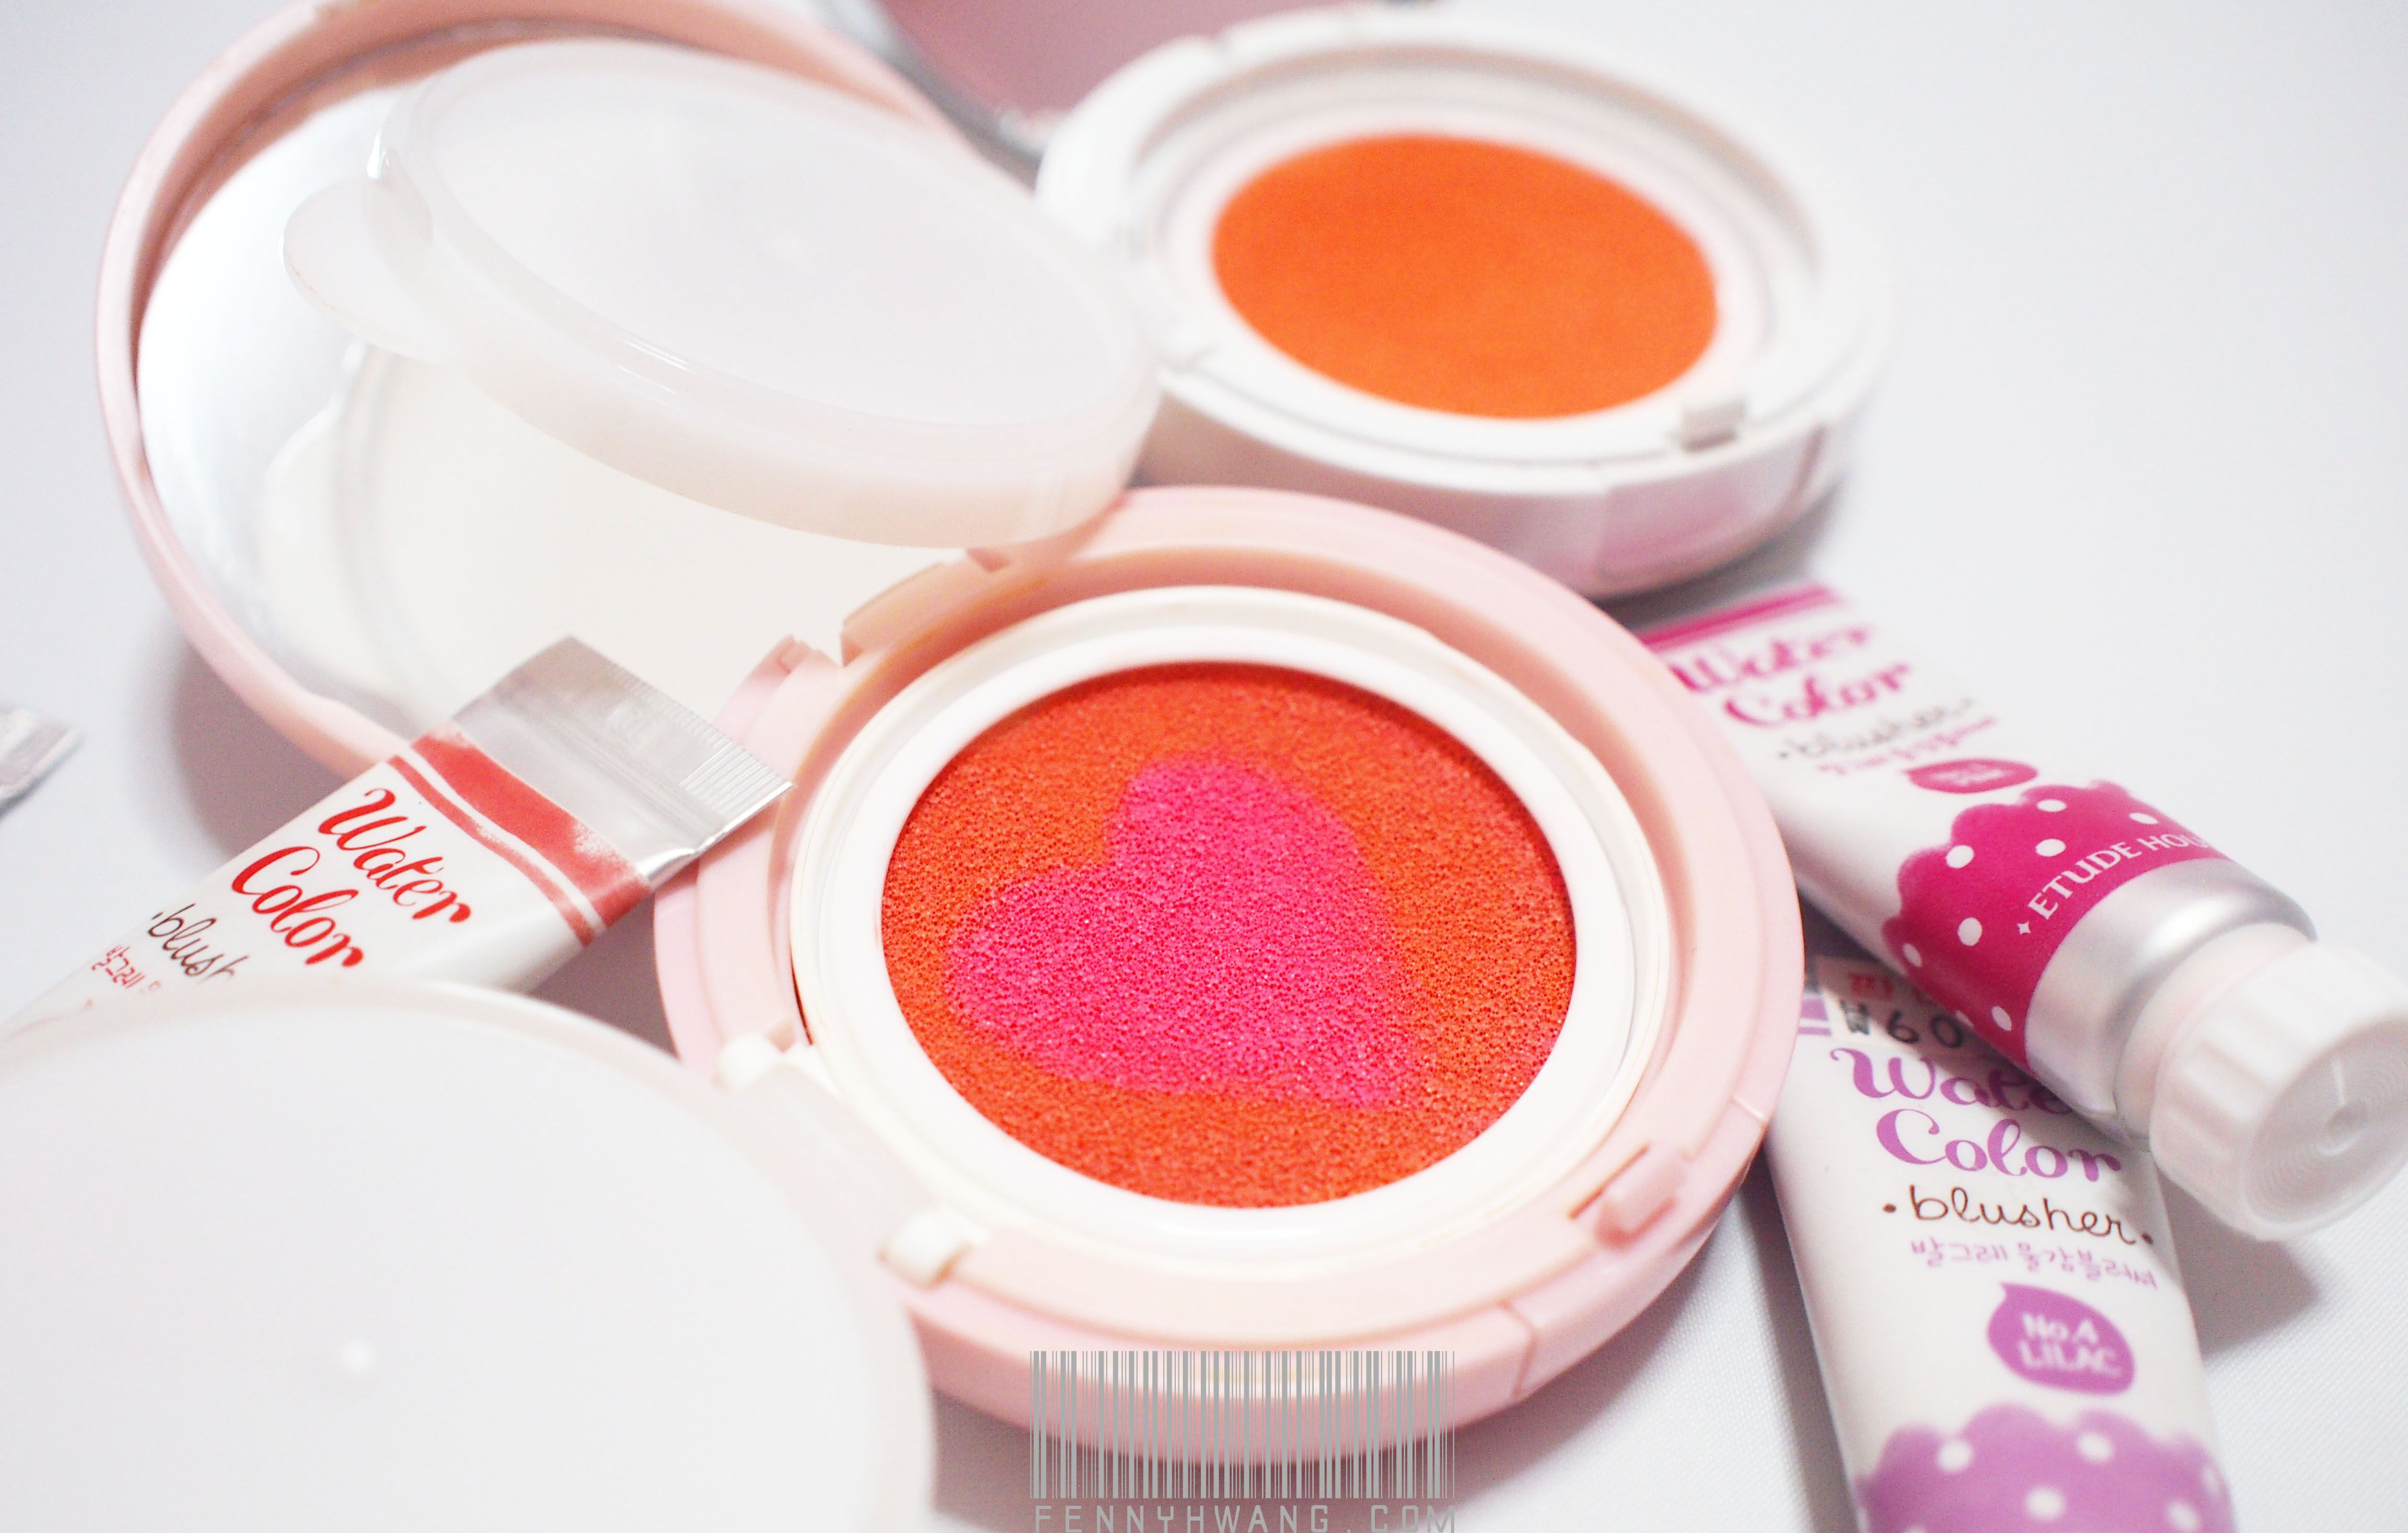 Diy Cushion Blusher From Etude House Products Super F Icial